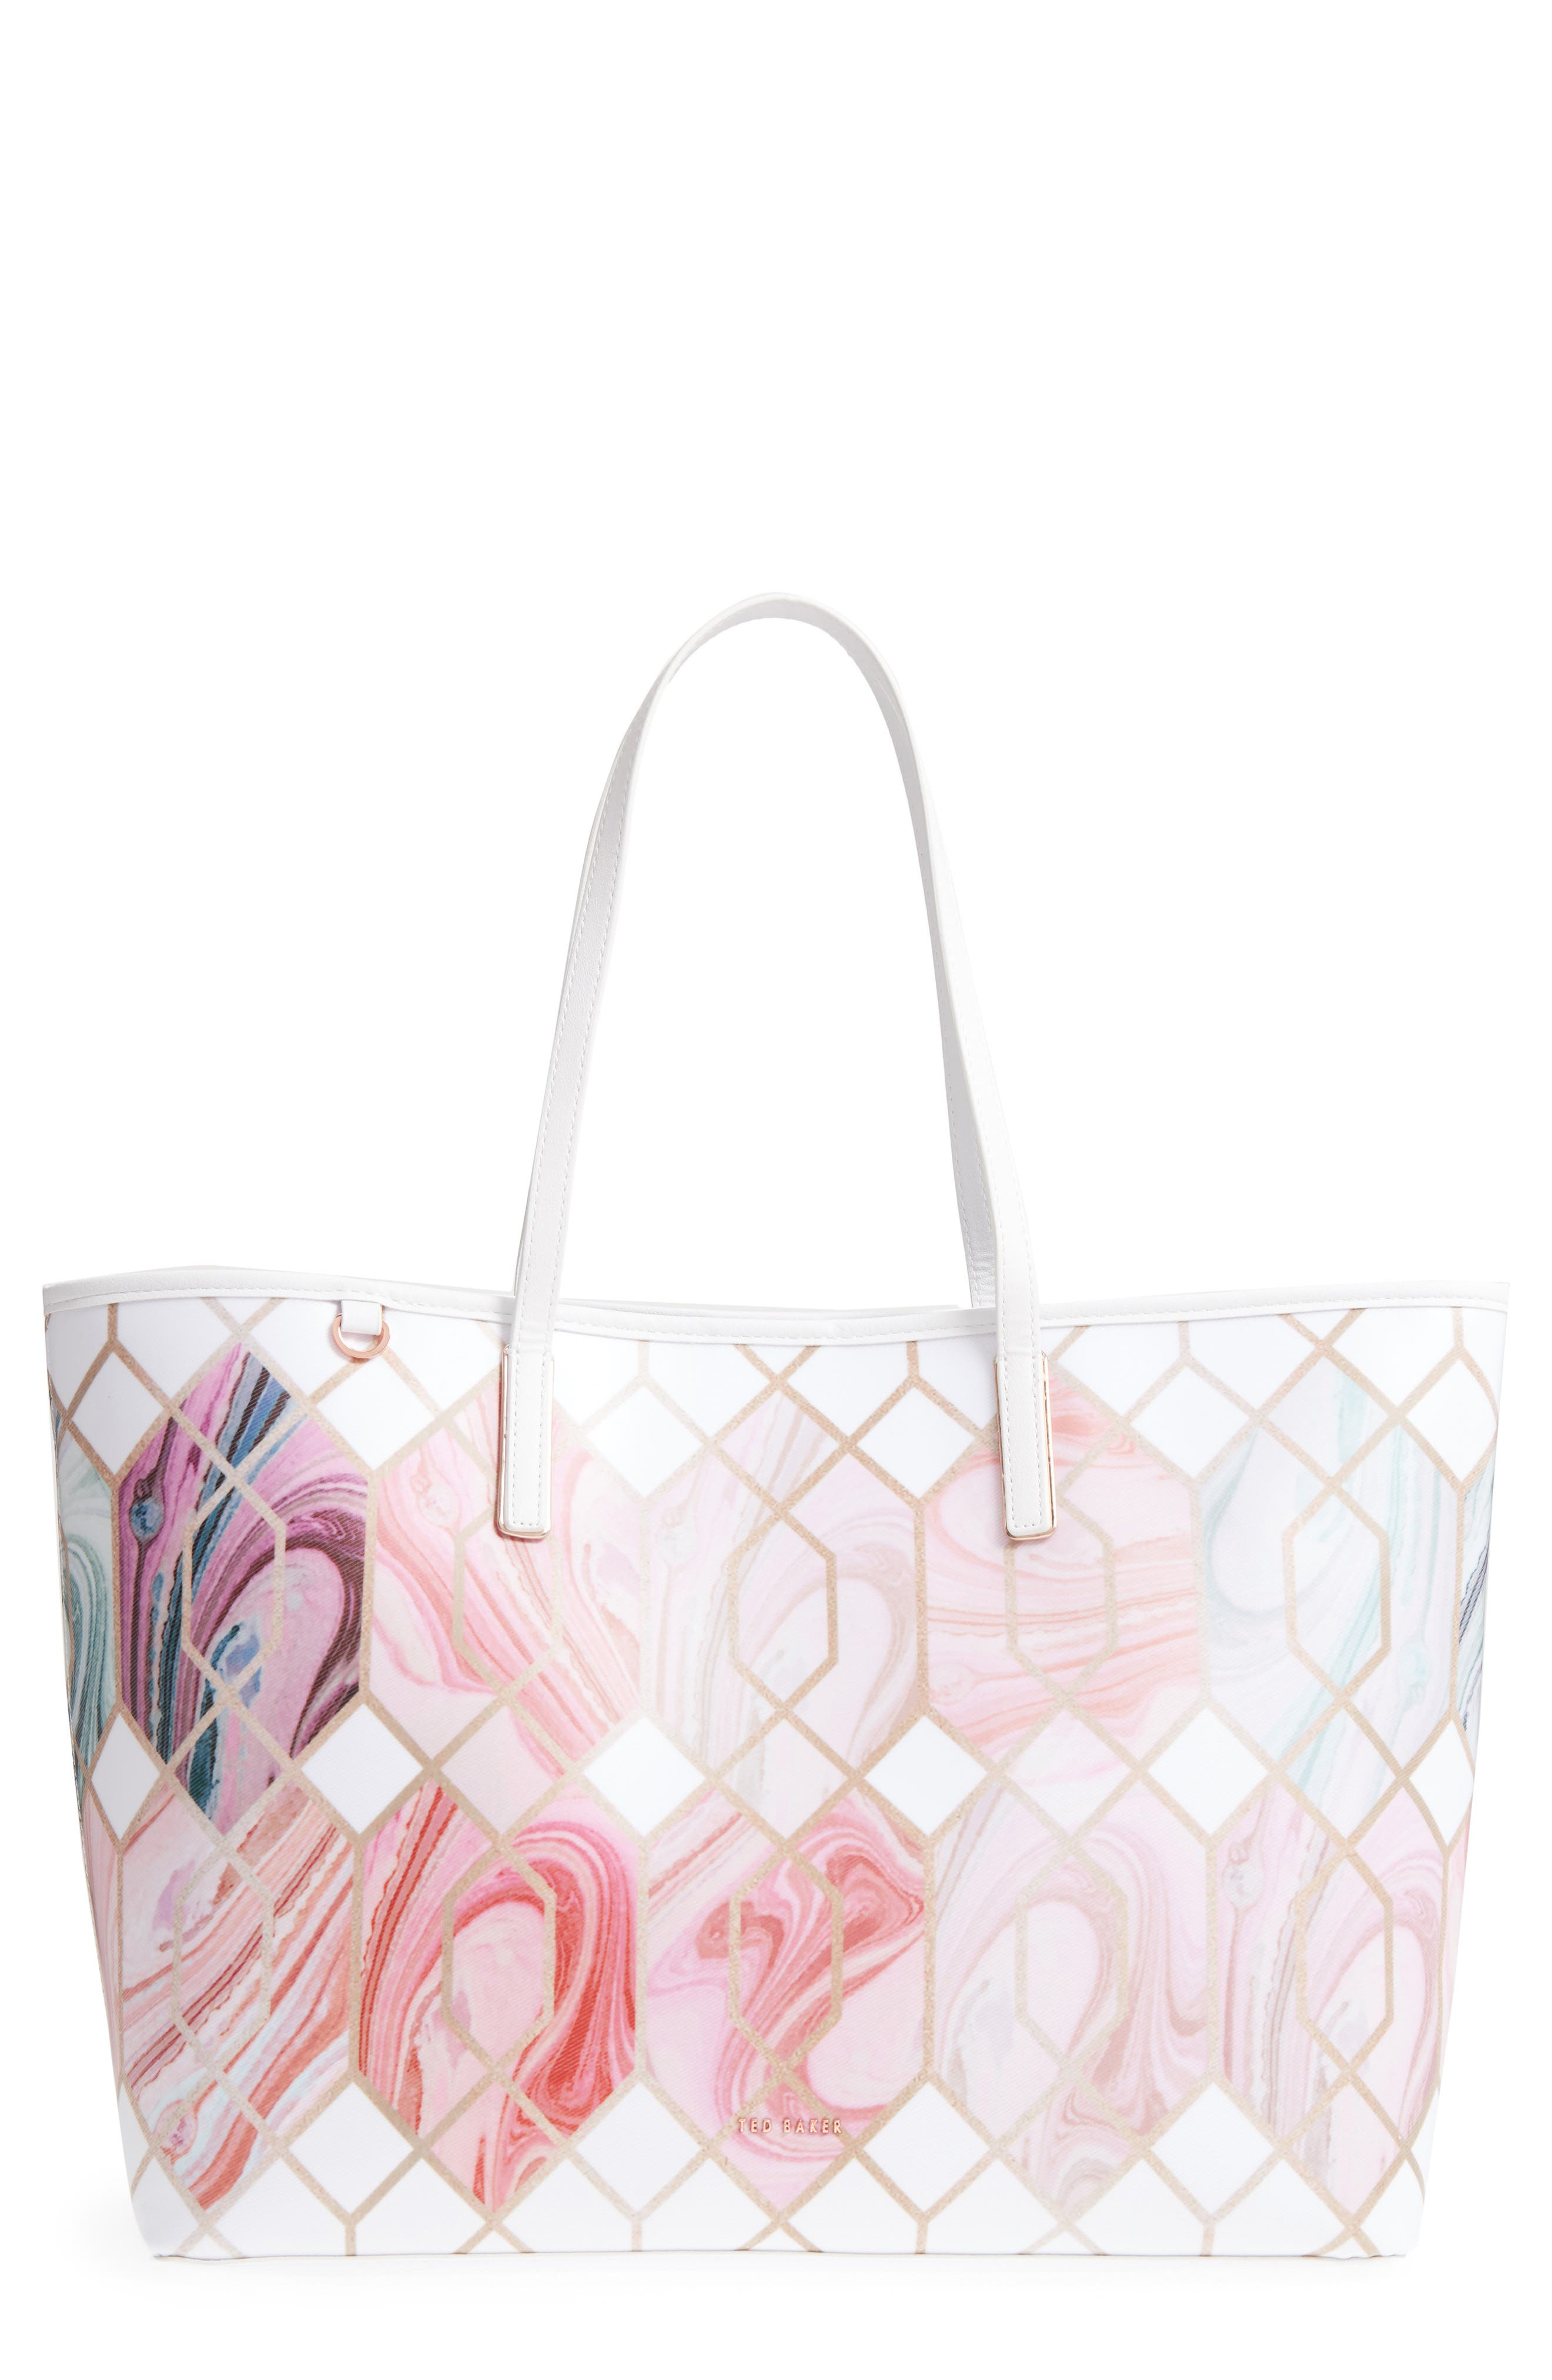 Aamy Sea of Clouds Bloom Canvas Tote,                             Main thumbnail 1, color,                             White